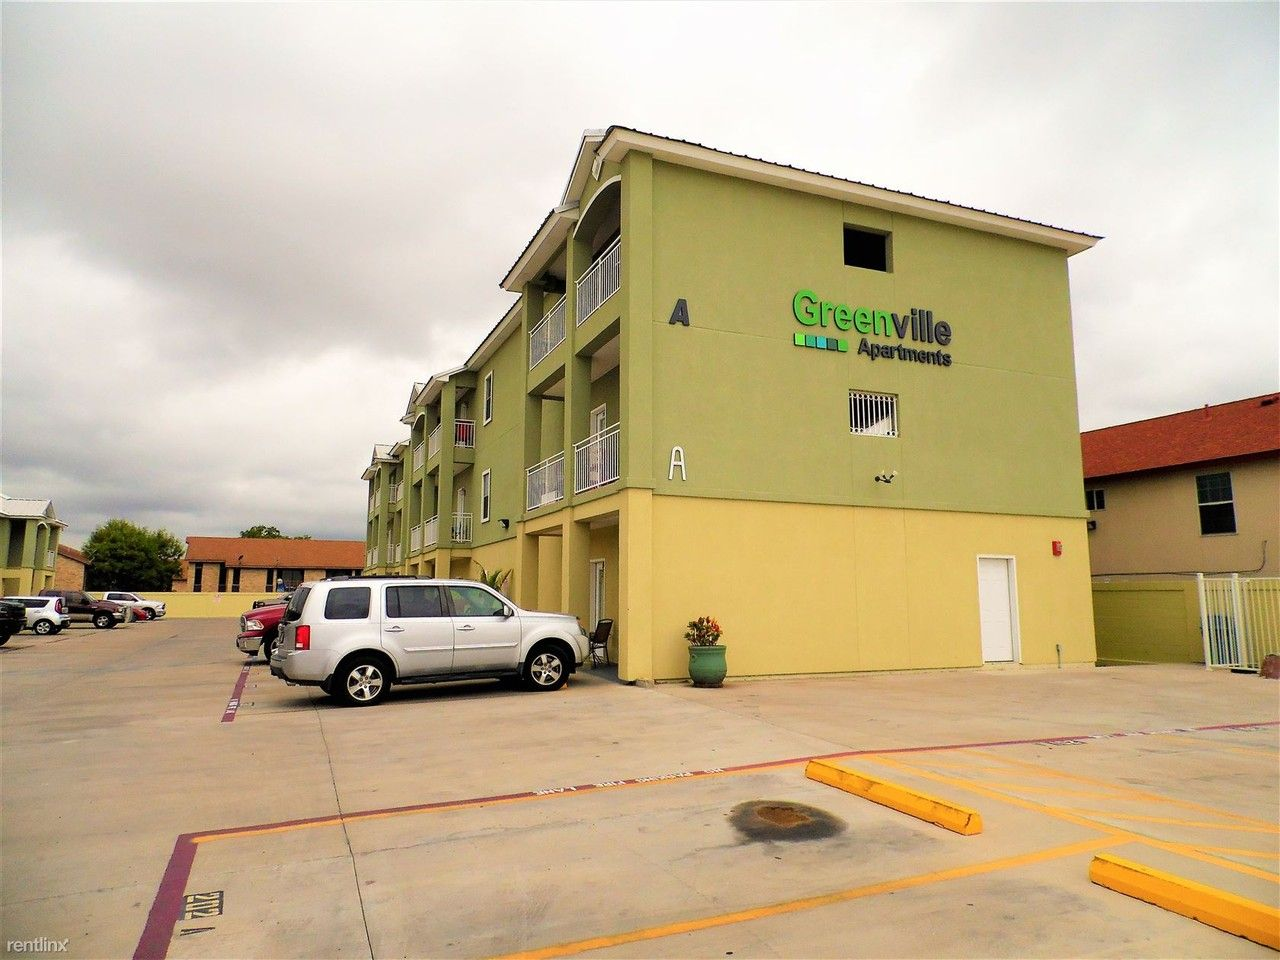 5402 Marcella Ave Laredo Tx 78041 2 Bedroom Apartment For Rent For 915 Month Zumper